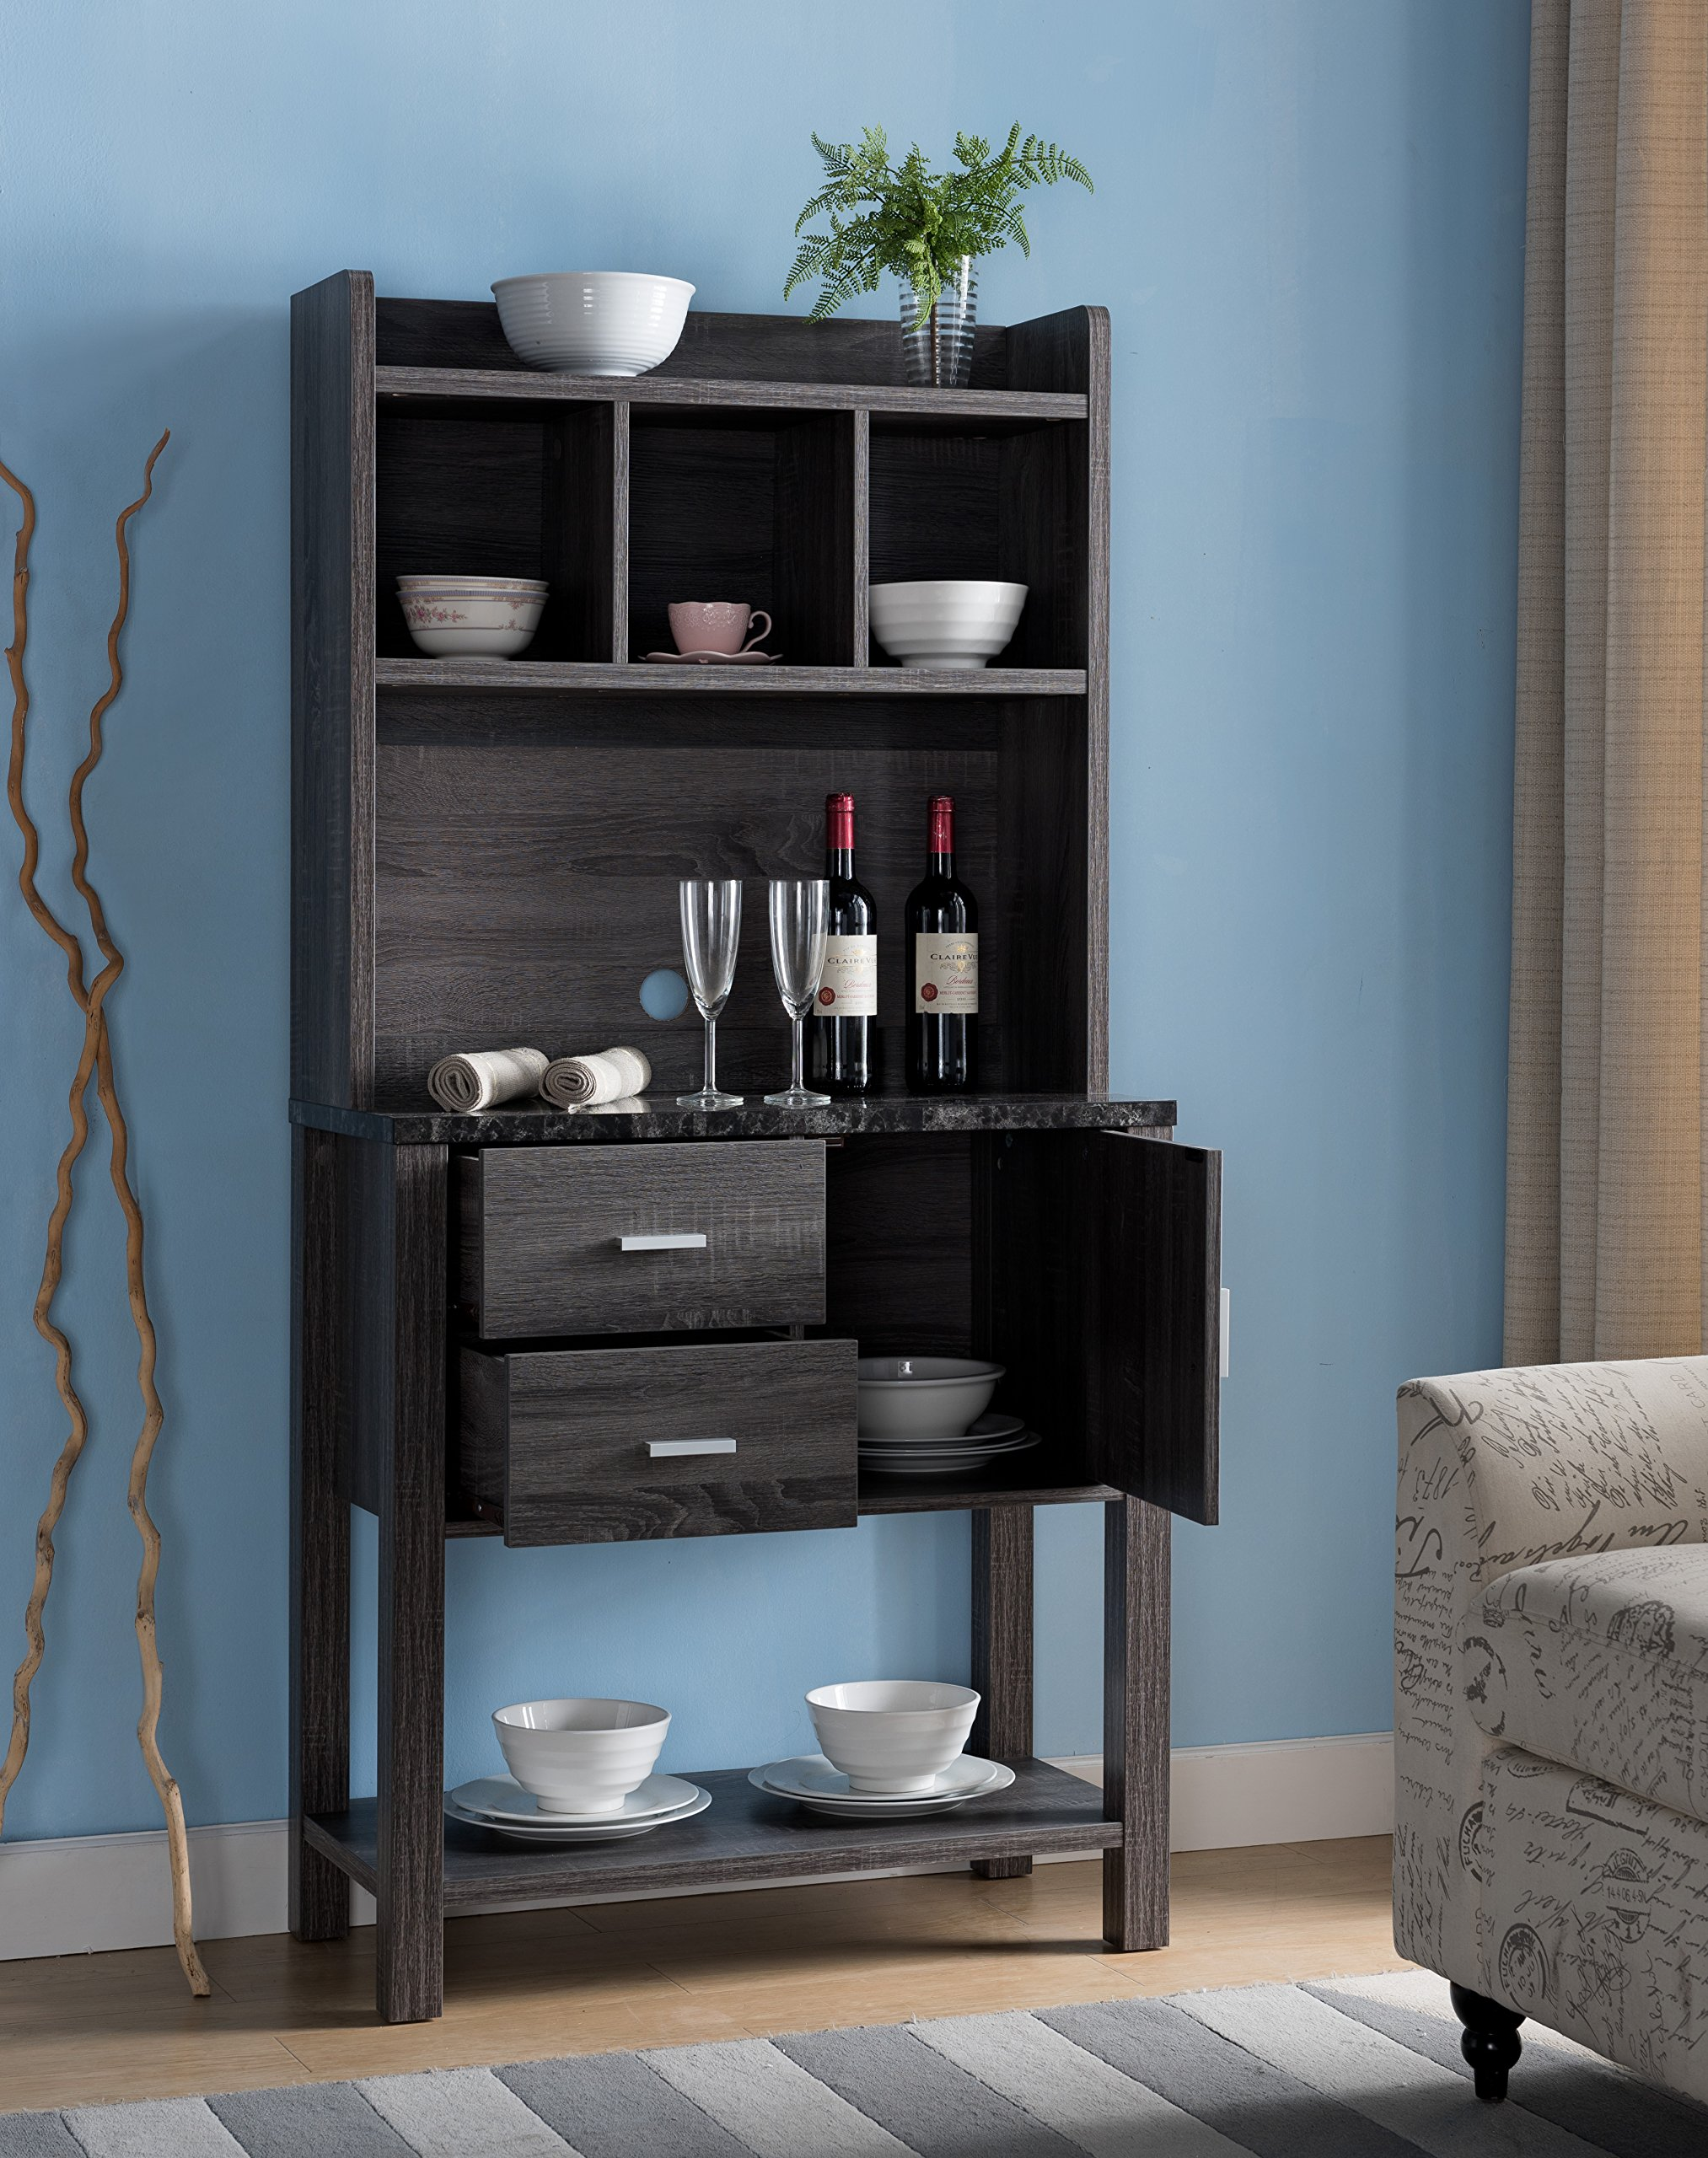 Smart home 161891 Baker's Rack (Two-Tone Finish) by Smart home (Image #2)